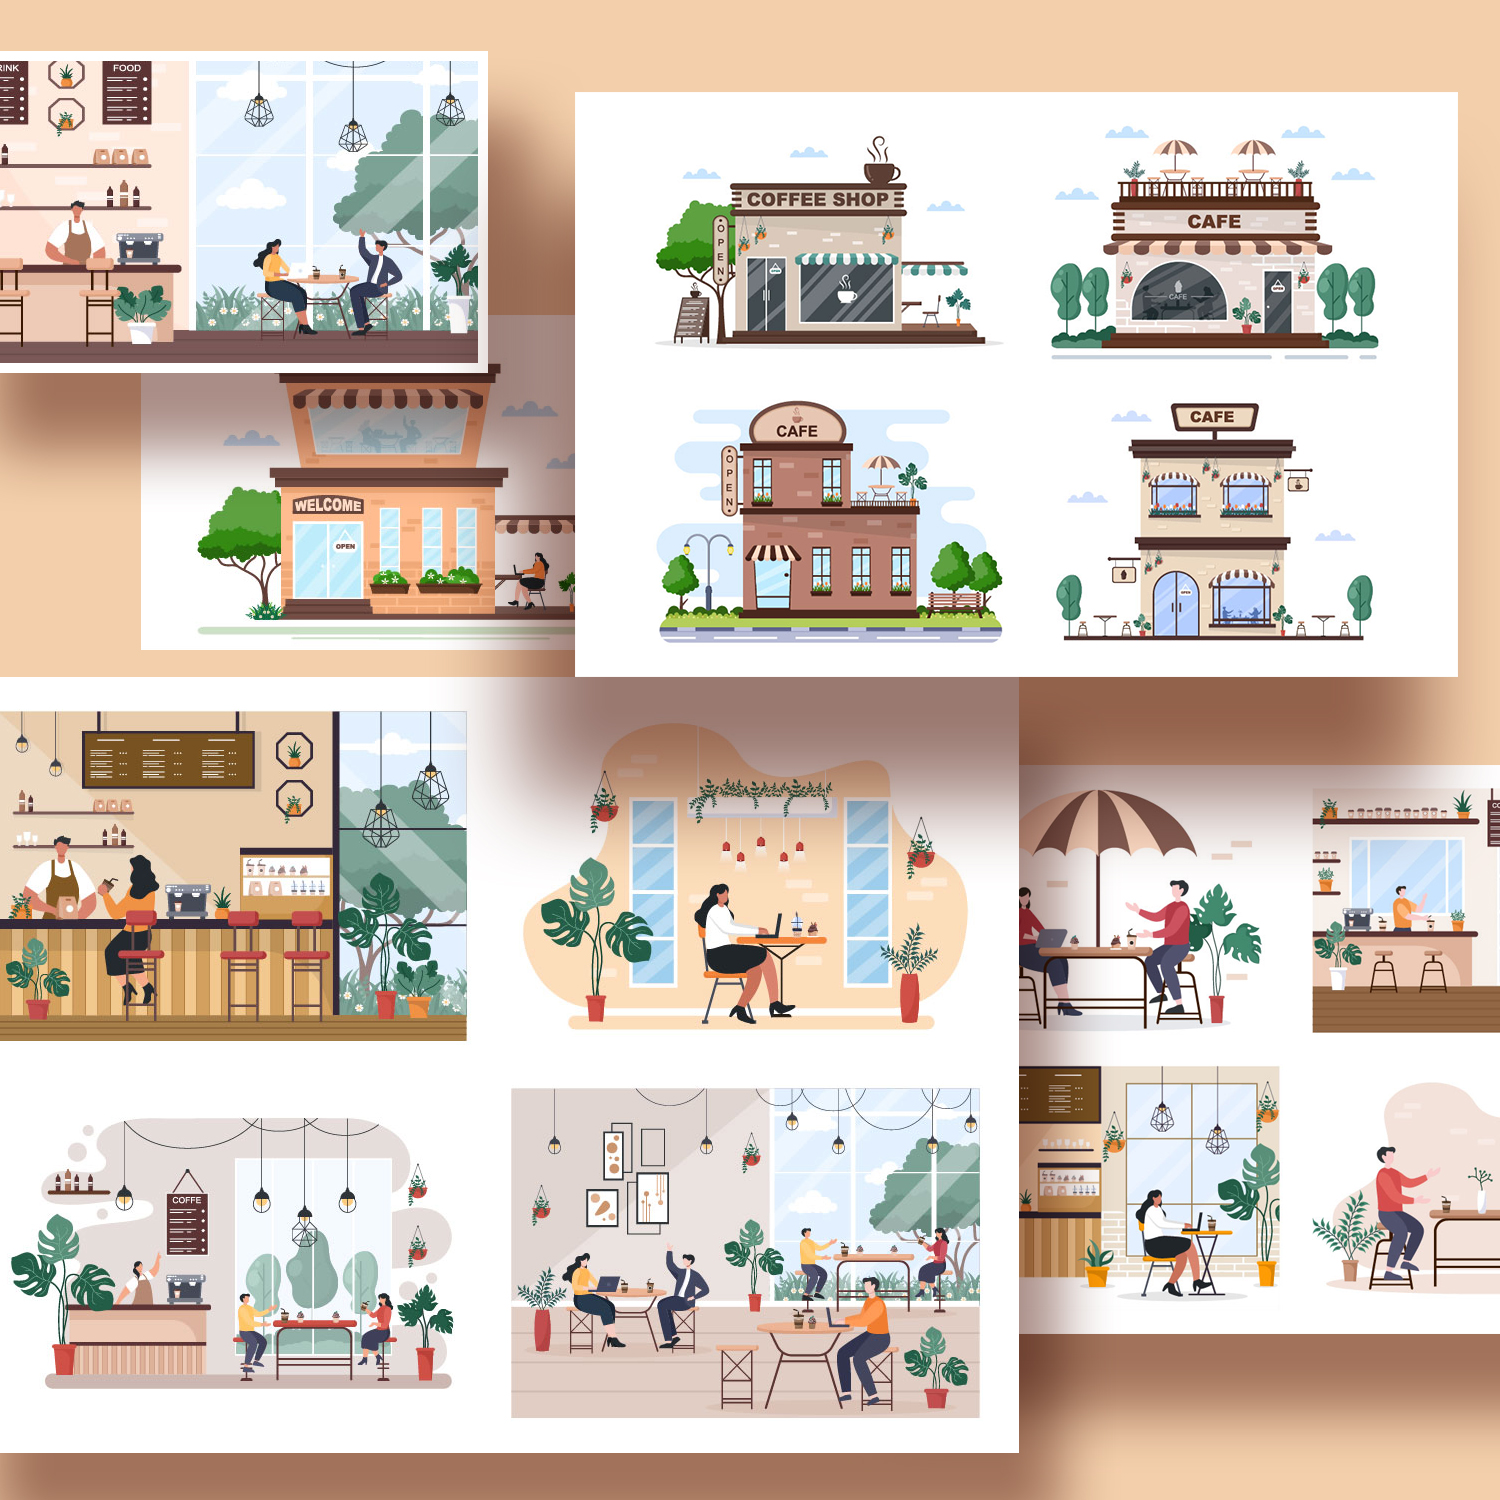 19 Cafe or Coffee Shop Illustrations cover image.